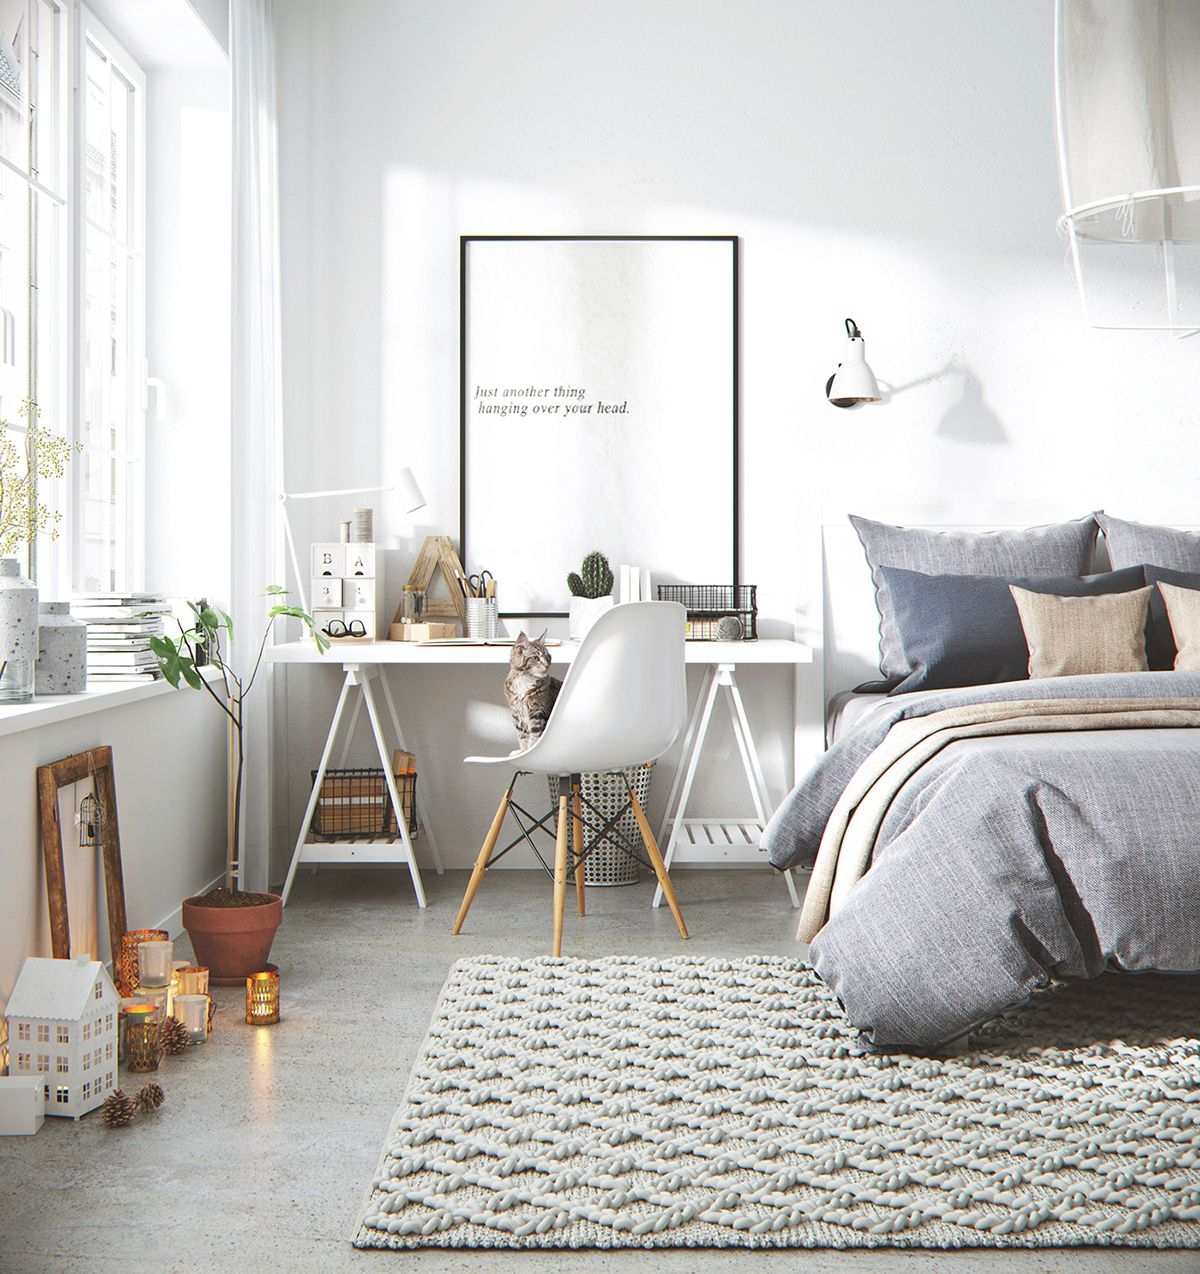 Gravity home 3d scandinavian apartment interior for Scandinavian style wohnen